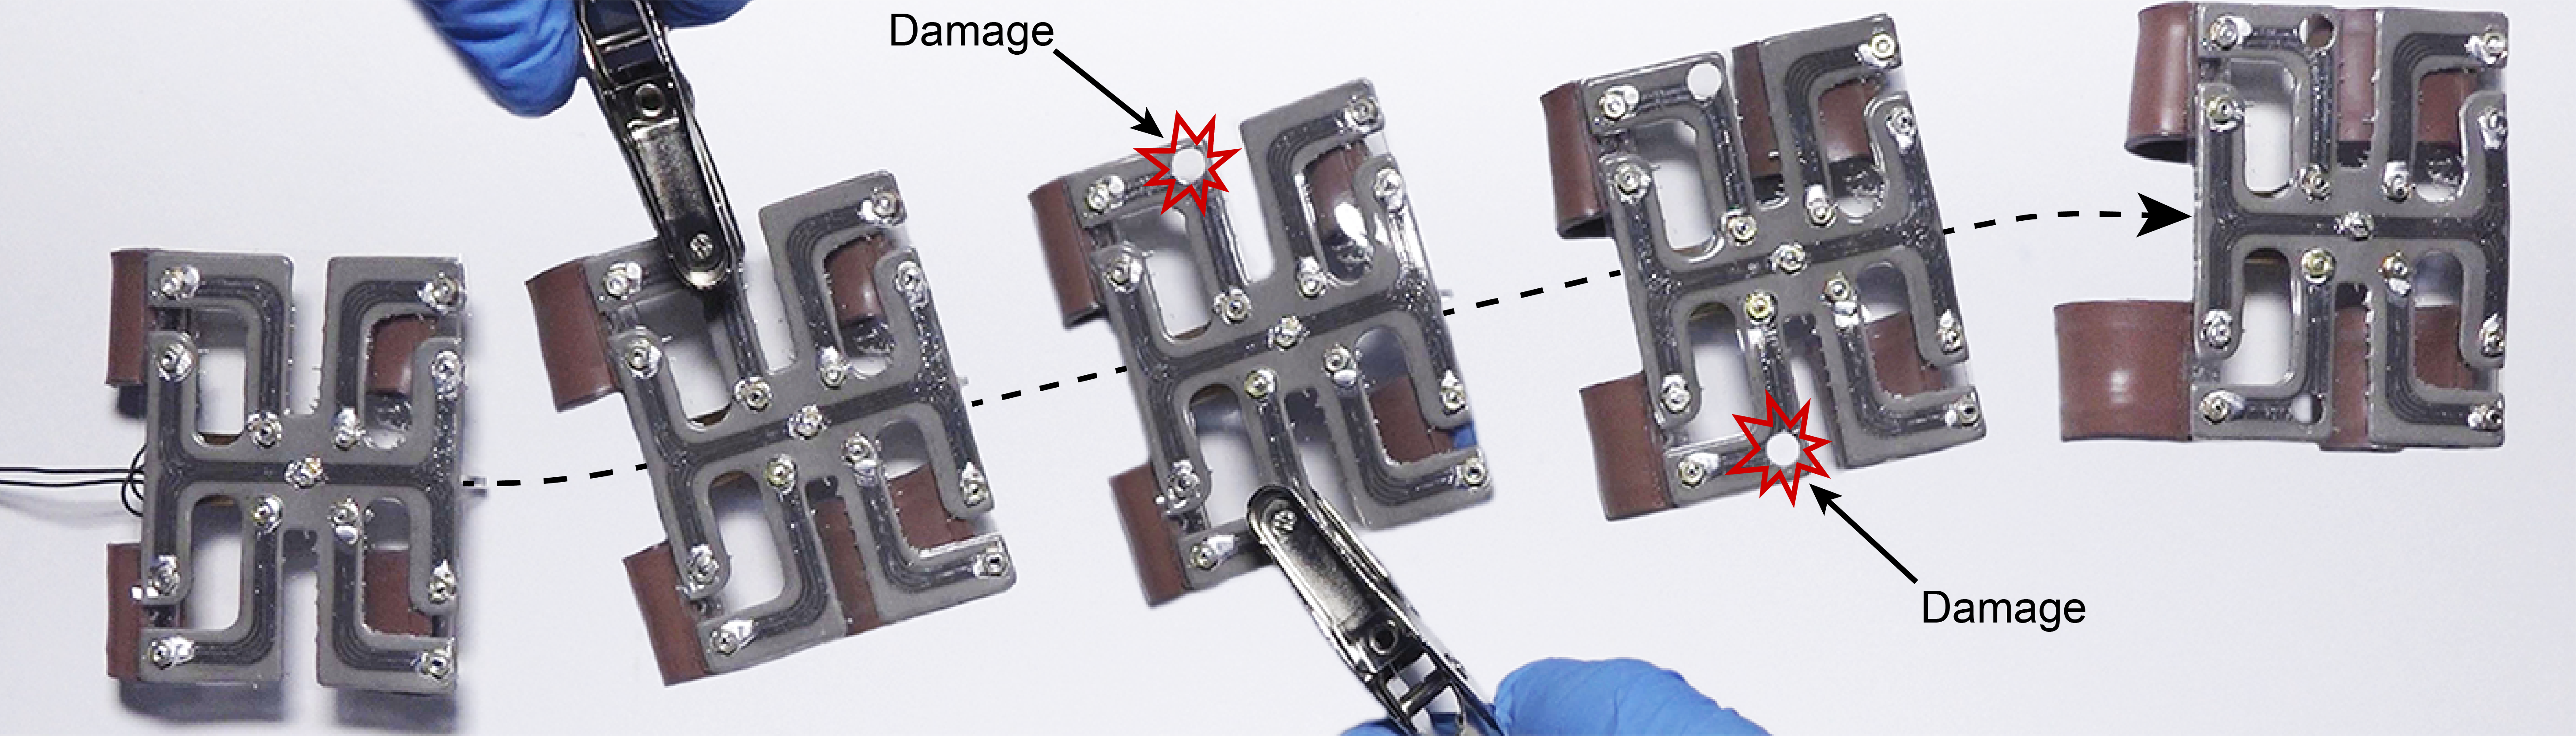 Researchers Create Self-Healing Material for Biologically-Inspired Robots